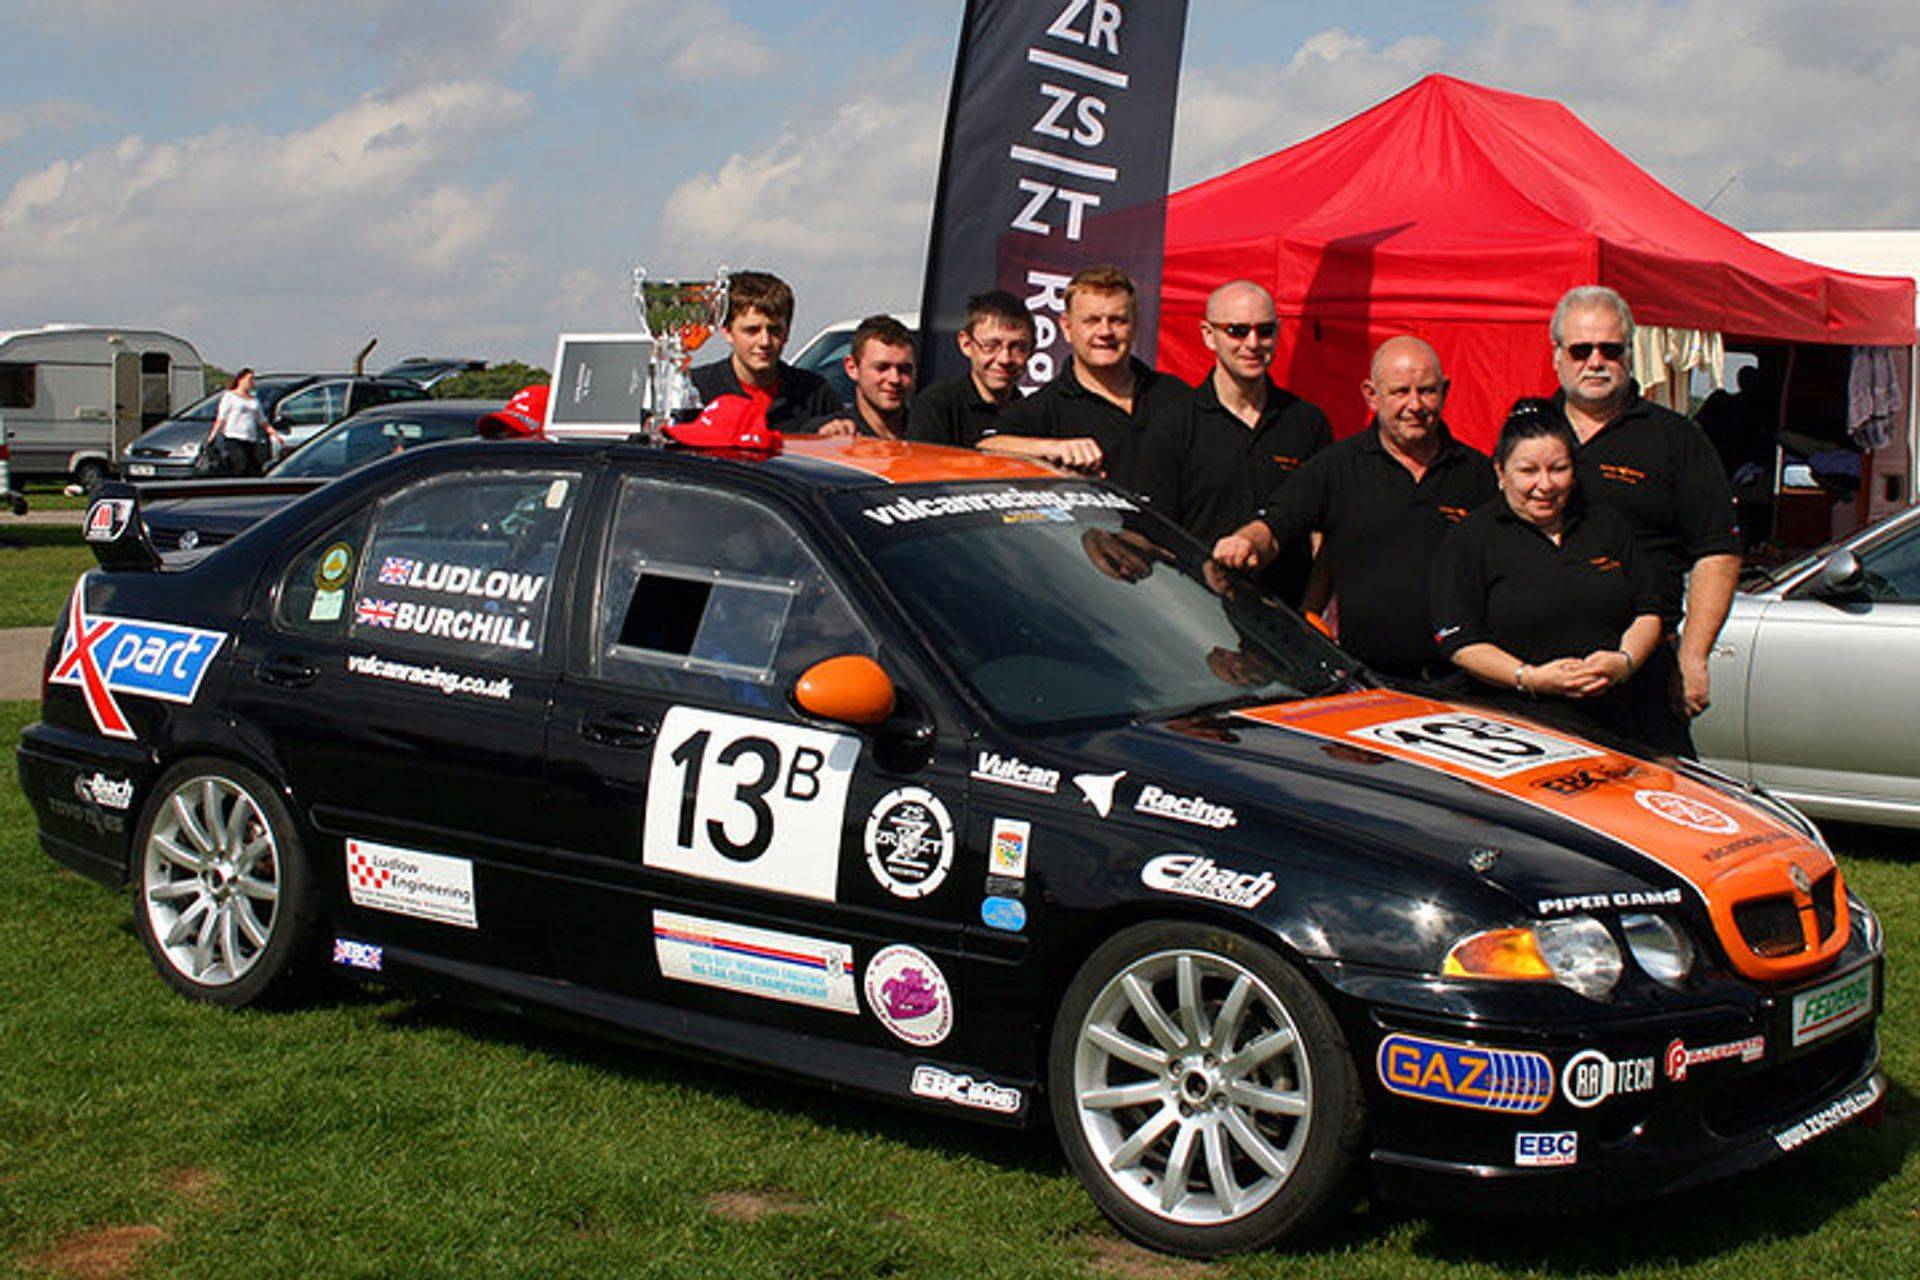 MG ZS V6 180 vulcan racing